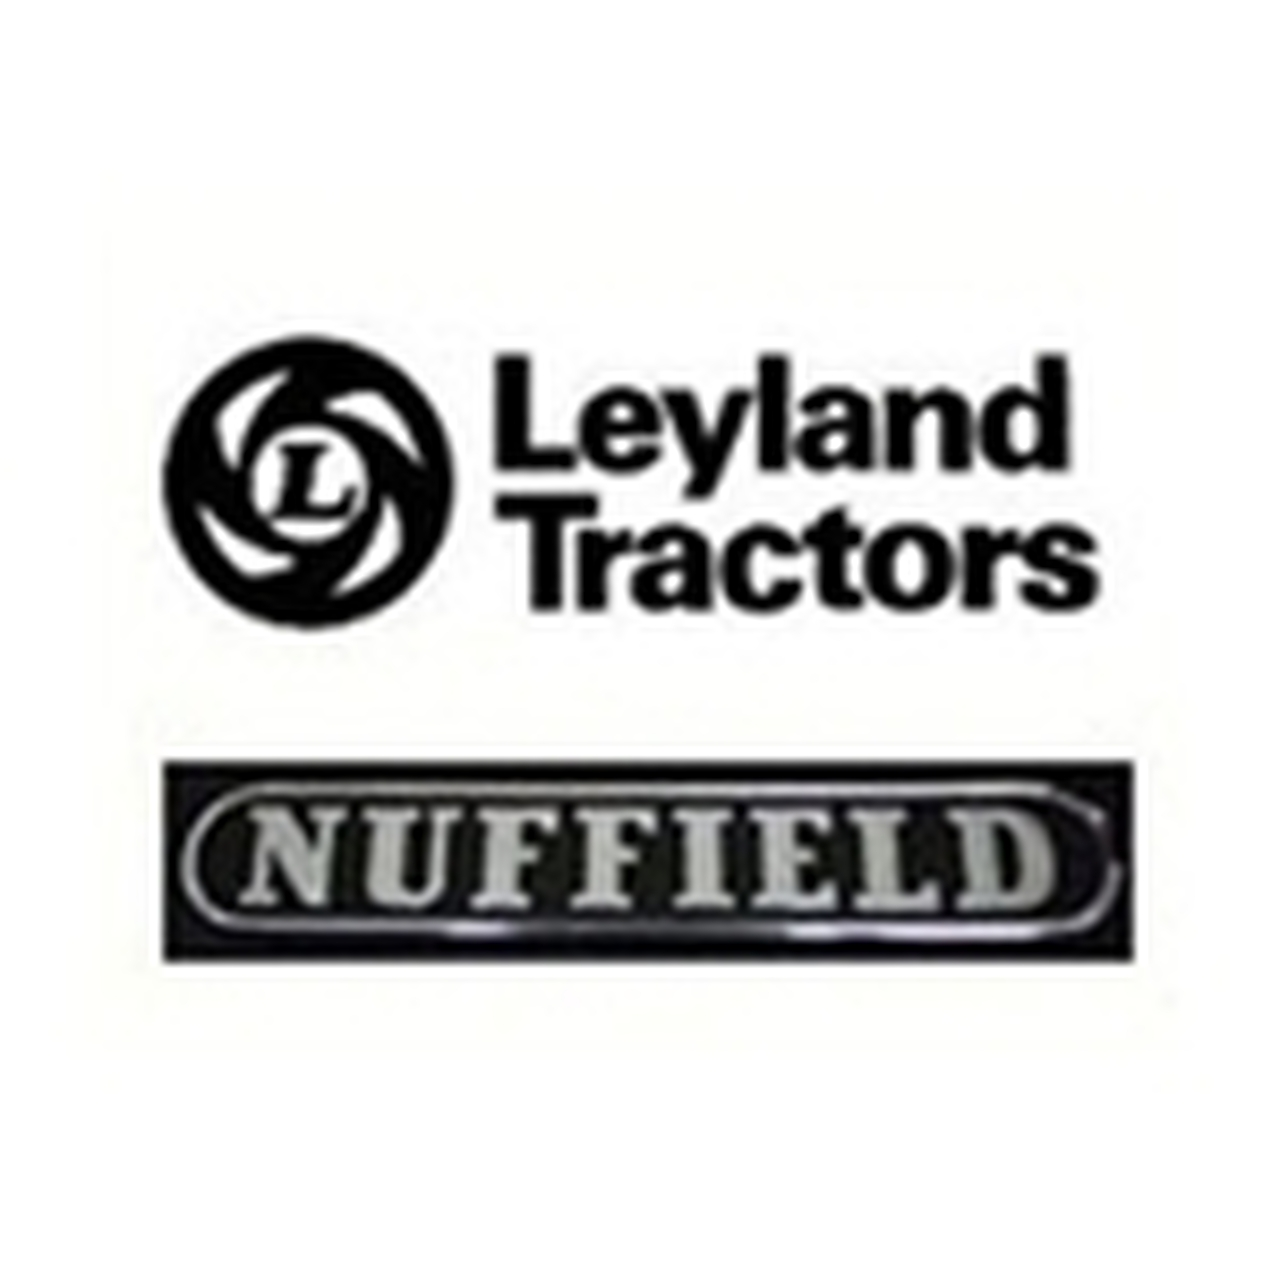 Leyland Nuffield